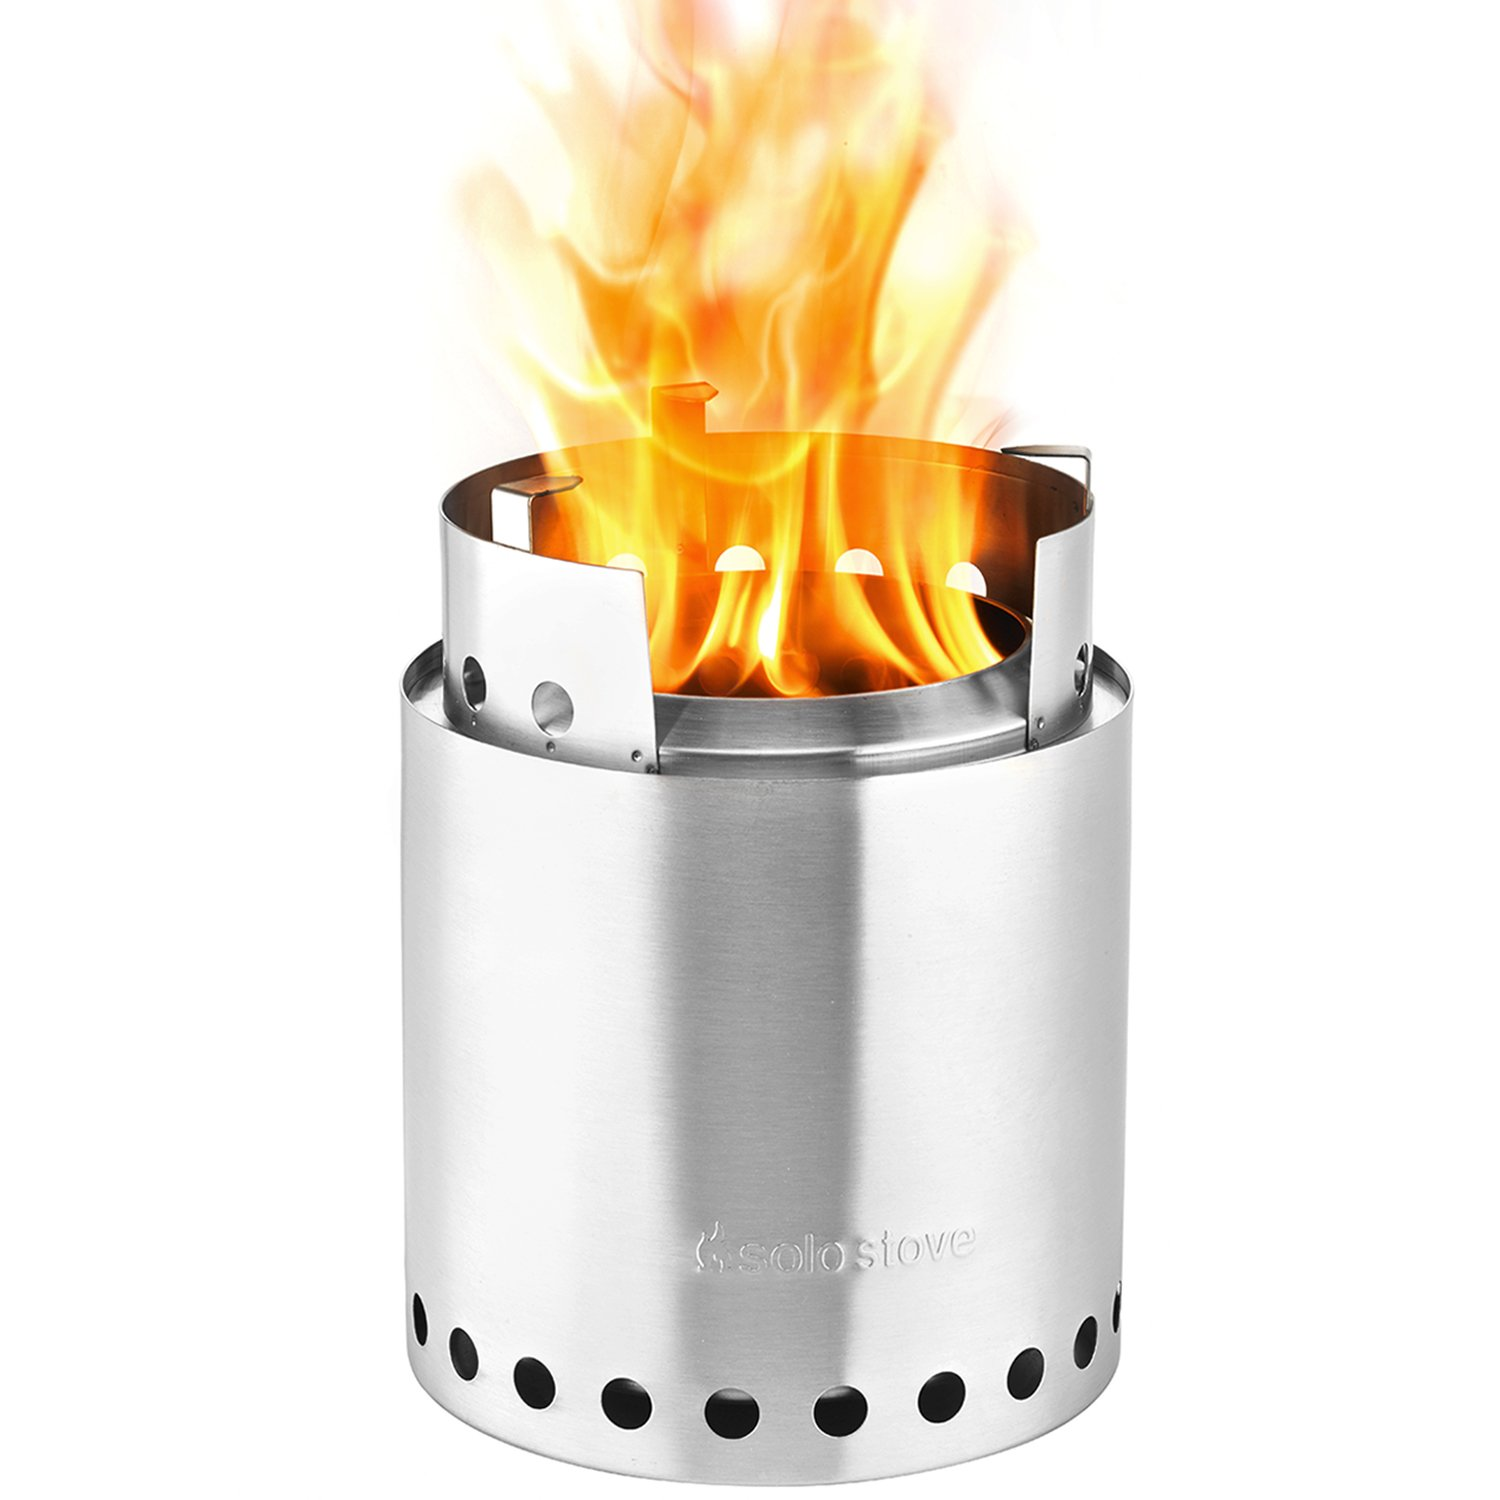 Solo Stove Campfire - Largest Version of Original Solo Stove. Super-efficient Wood Burning Camping Stove. Great for Camping, Hiking, Survival, Emergency Preparation by Solo Stove SSCF